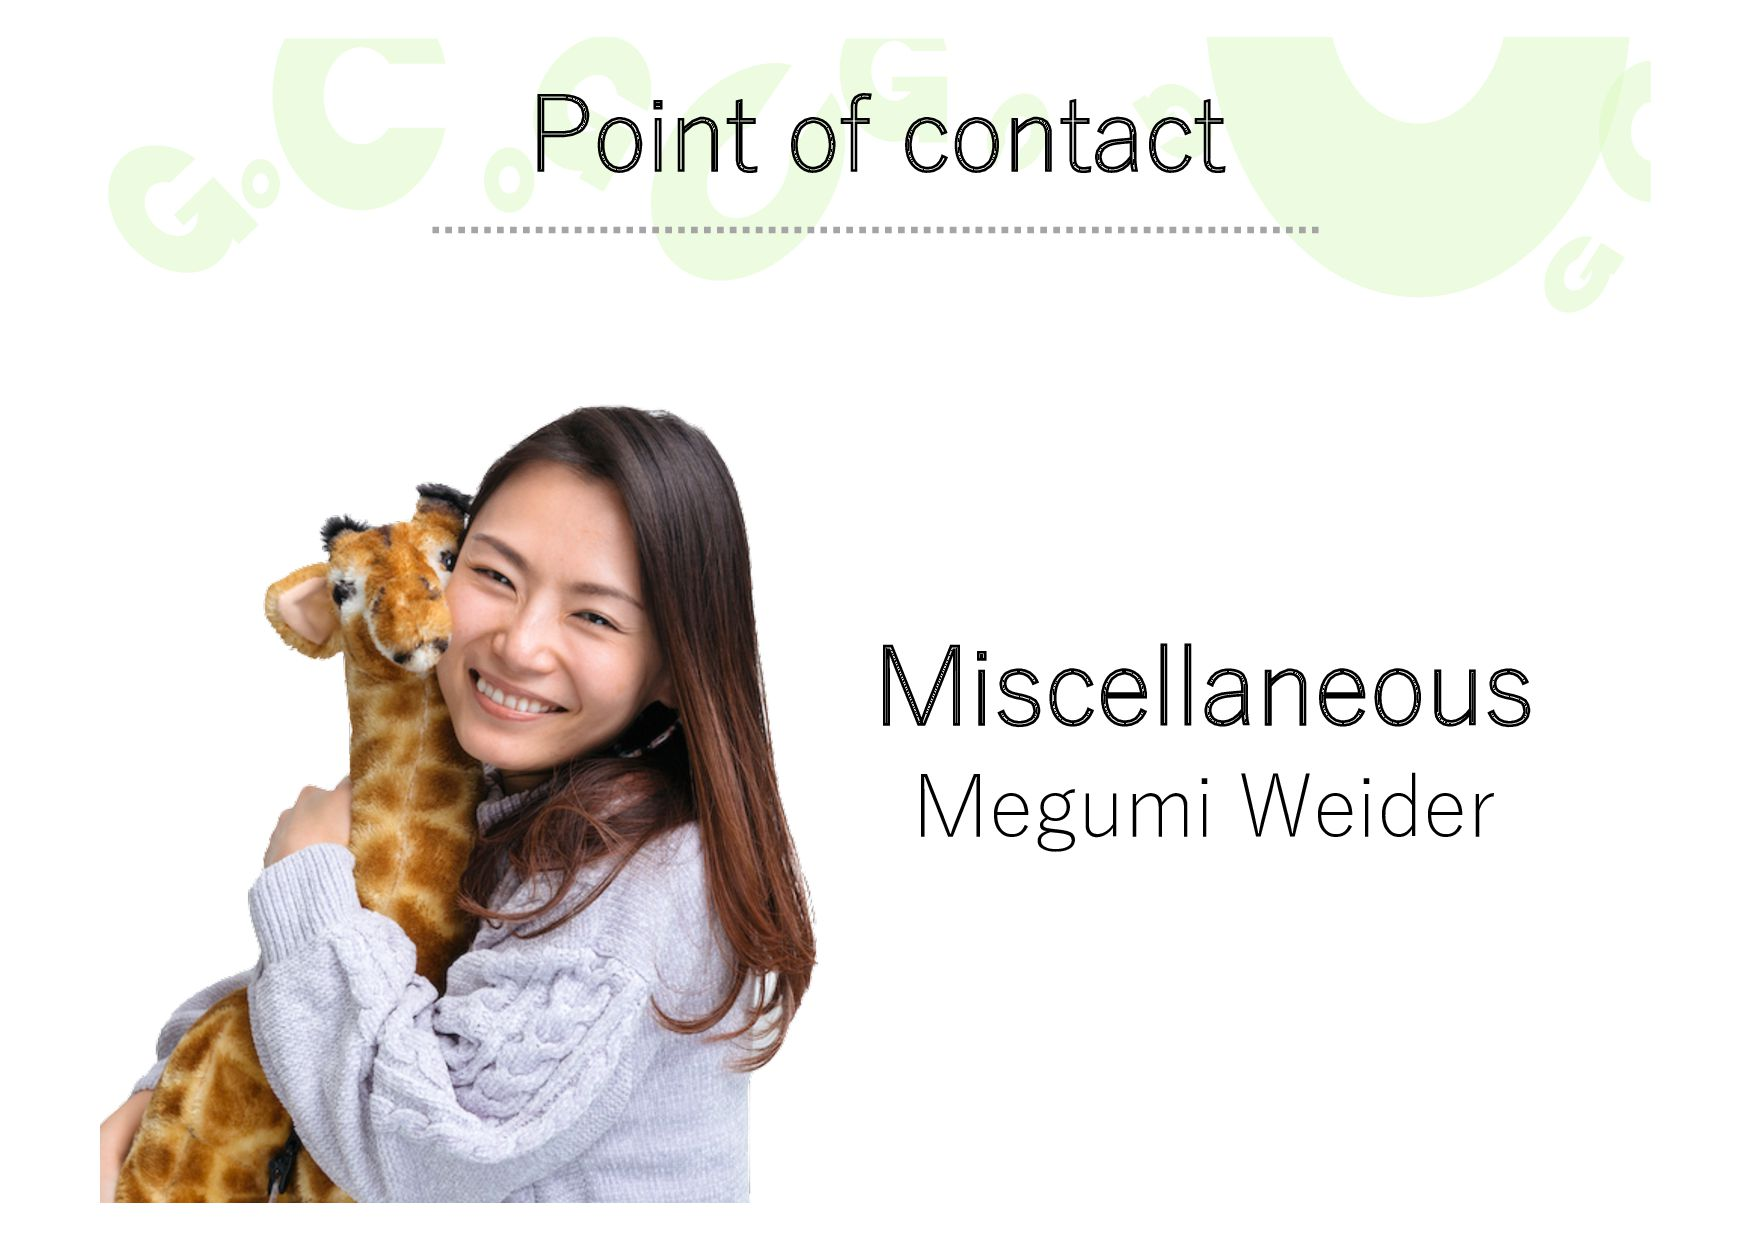 Point of contact Miscellaneous Megumi Weider